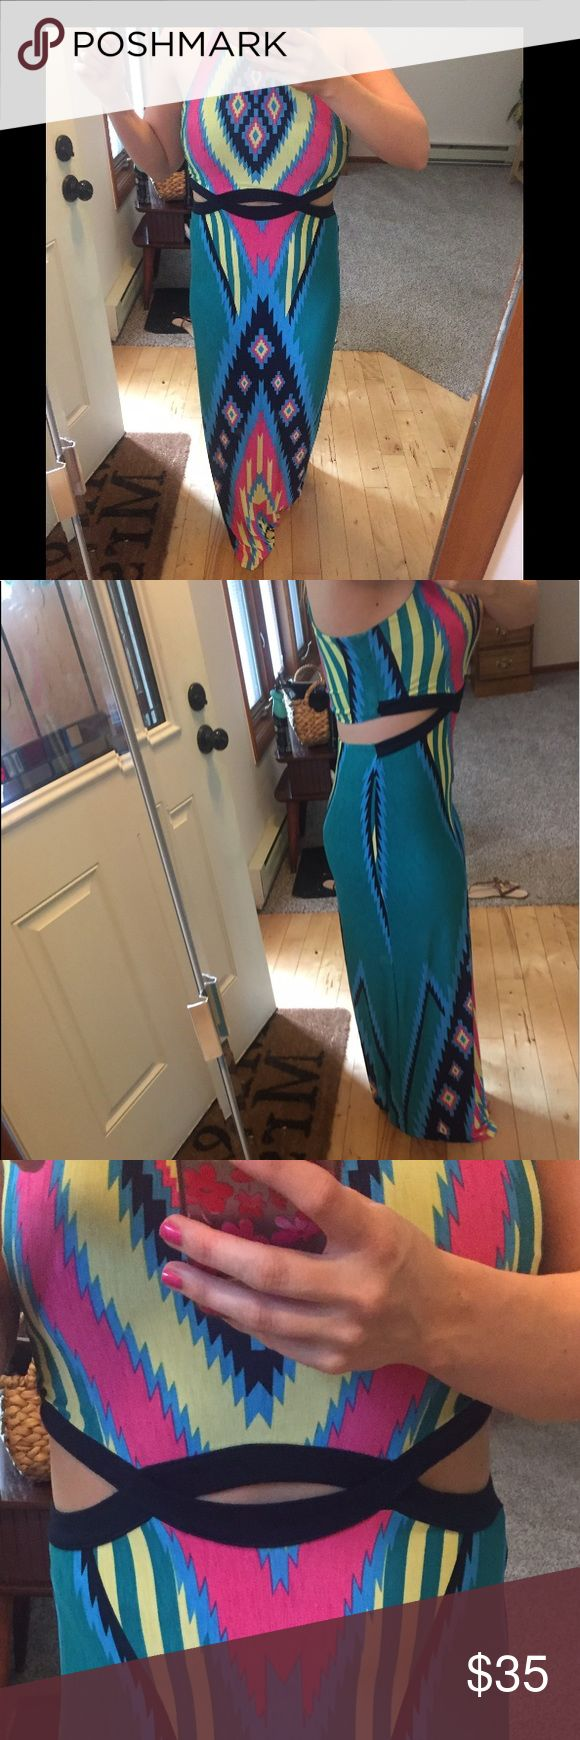 Amazing Aztec maxi nwot Literally love this dress but have never worn it besides to try on. Amazingly soft material. I am 5'3. Front cut outs. Back looks like two pieces but is one piece. Summer, festival, bright, sexy. Make reasonable offer. I am usually a 6/7 in dresses and this fits perfect. So medium or large. **NOT URBAN** tagged for exposure. From pink lily boutique. Urban Outfitters Dresses Maxi